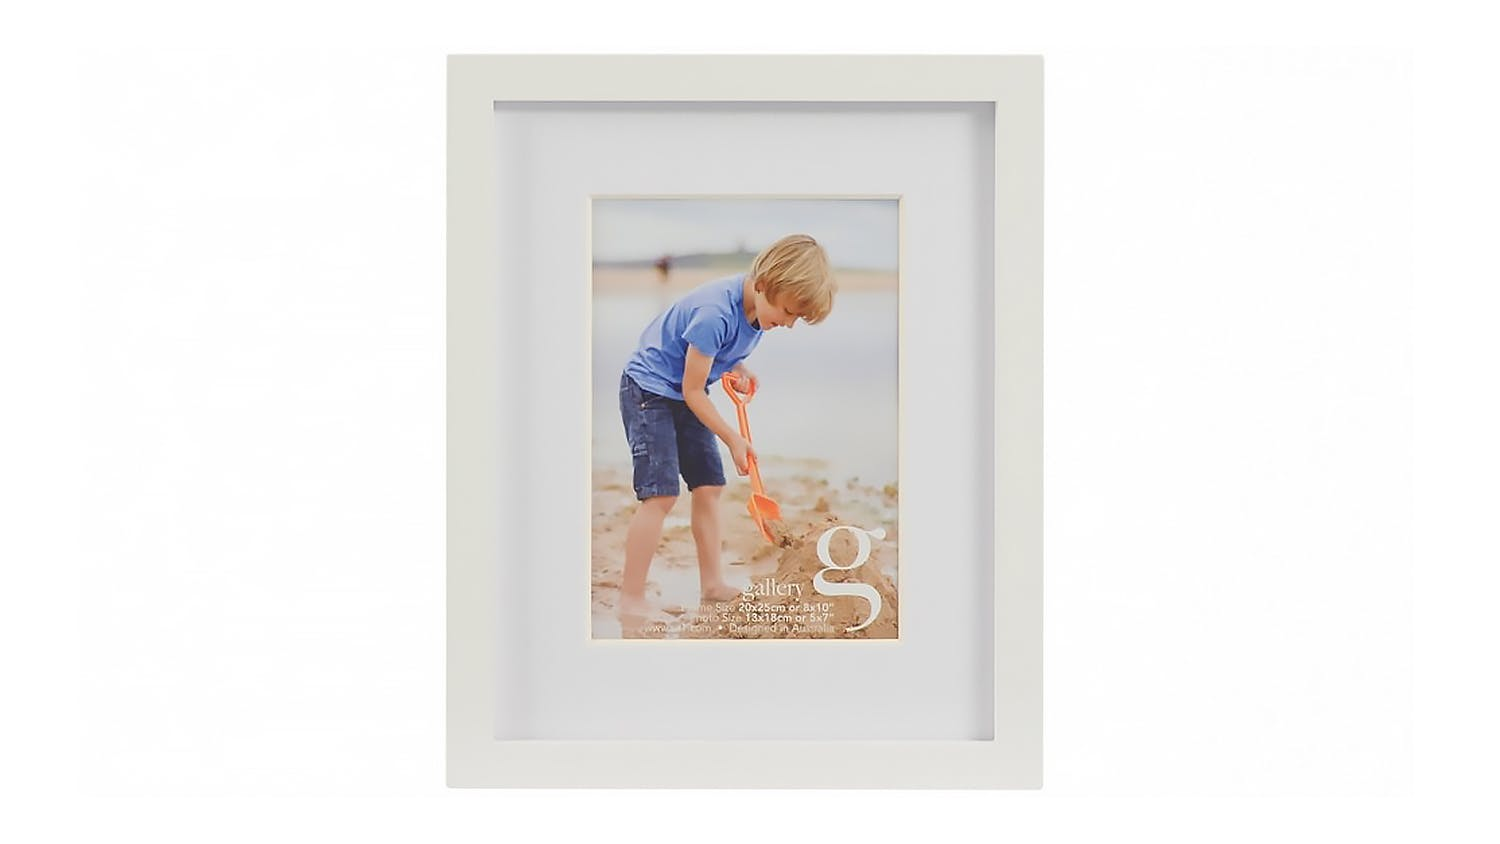 UR1 Gallery 8x10 Photo Frame with 5x7 Opening - White